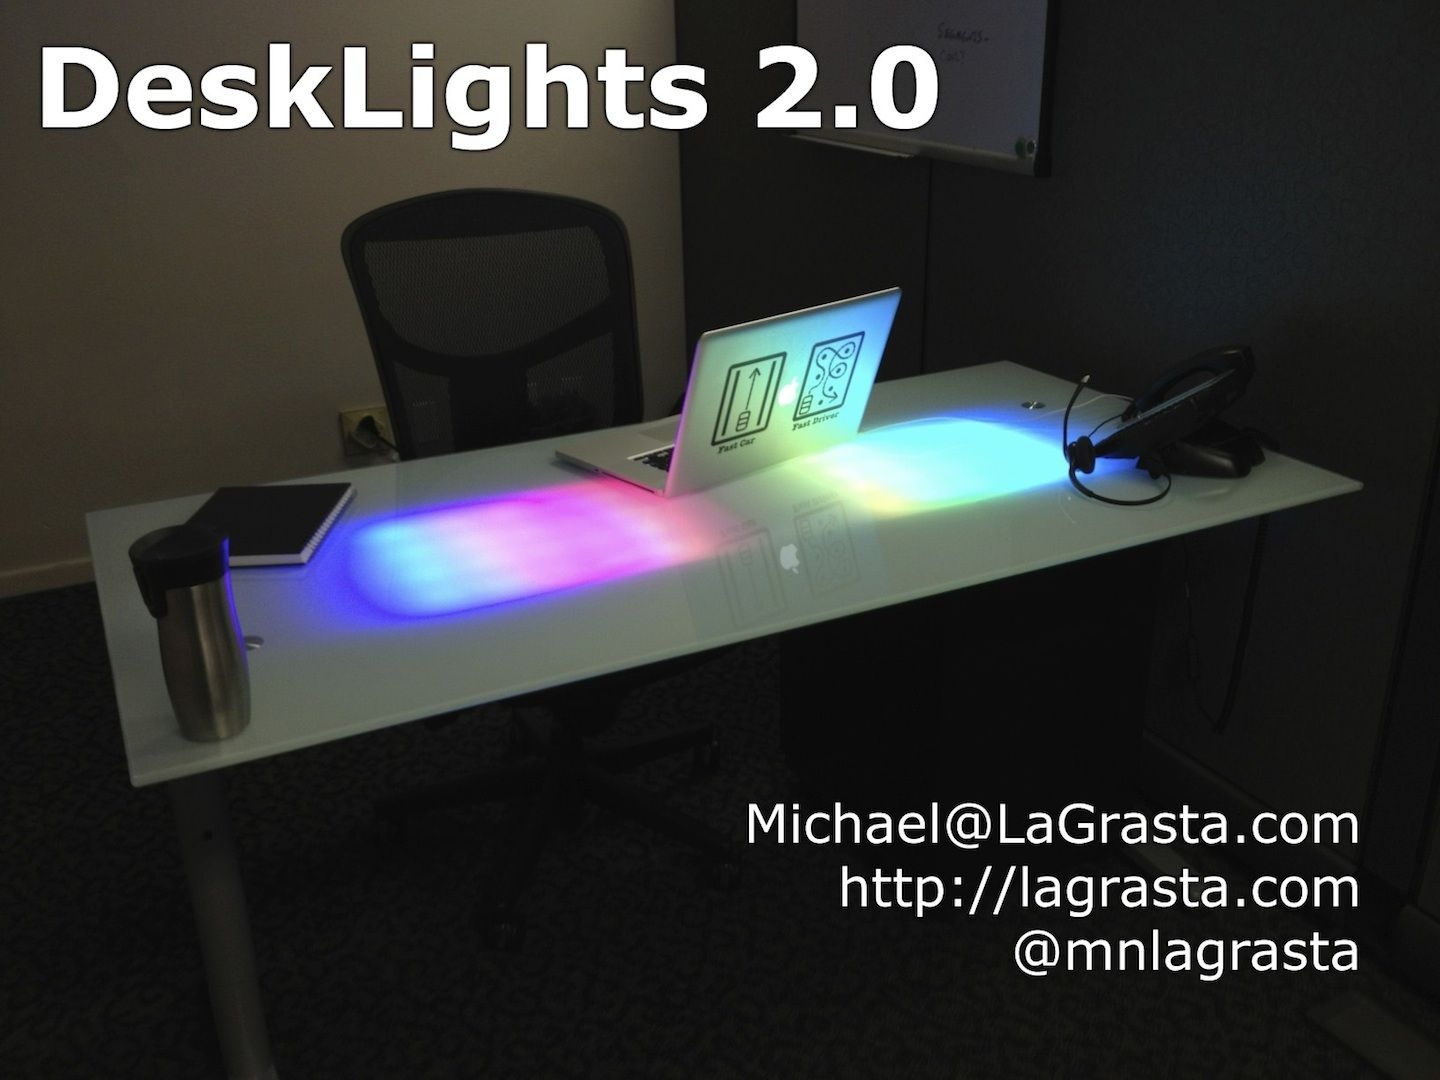 Notification desk maker faire led strip and ikea hackers materials ikea galant led strips arduino description network connected rgb leds provide event notifications by shining through a frosted glass desk mozeypictures Gallery